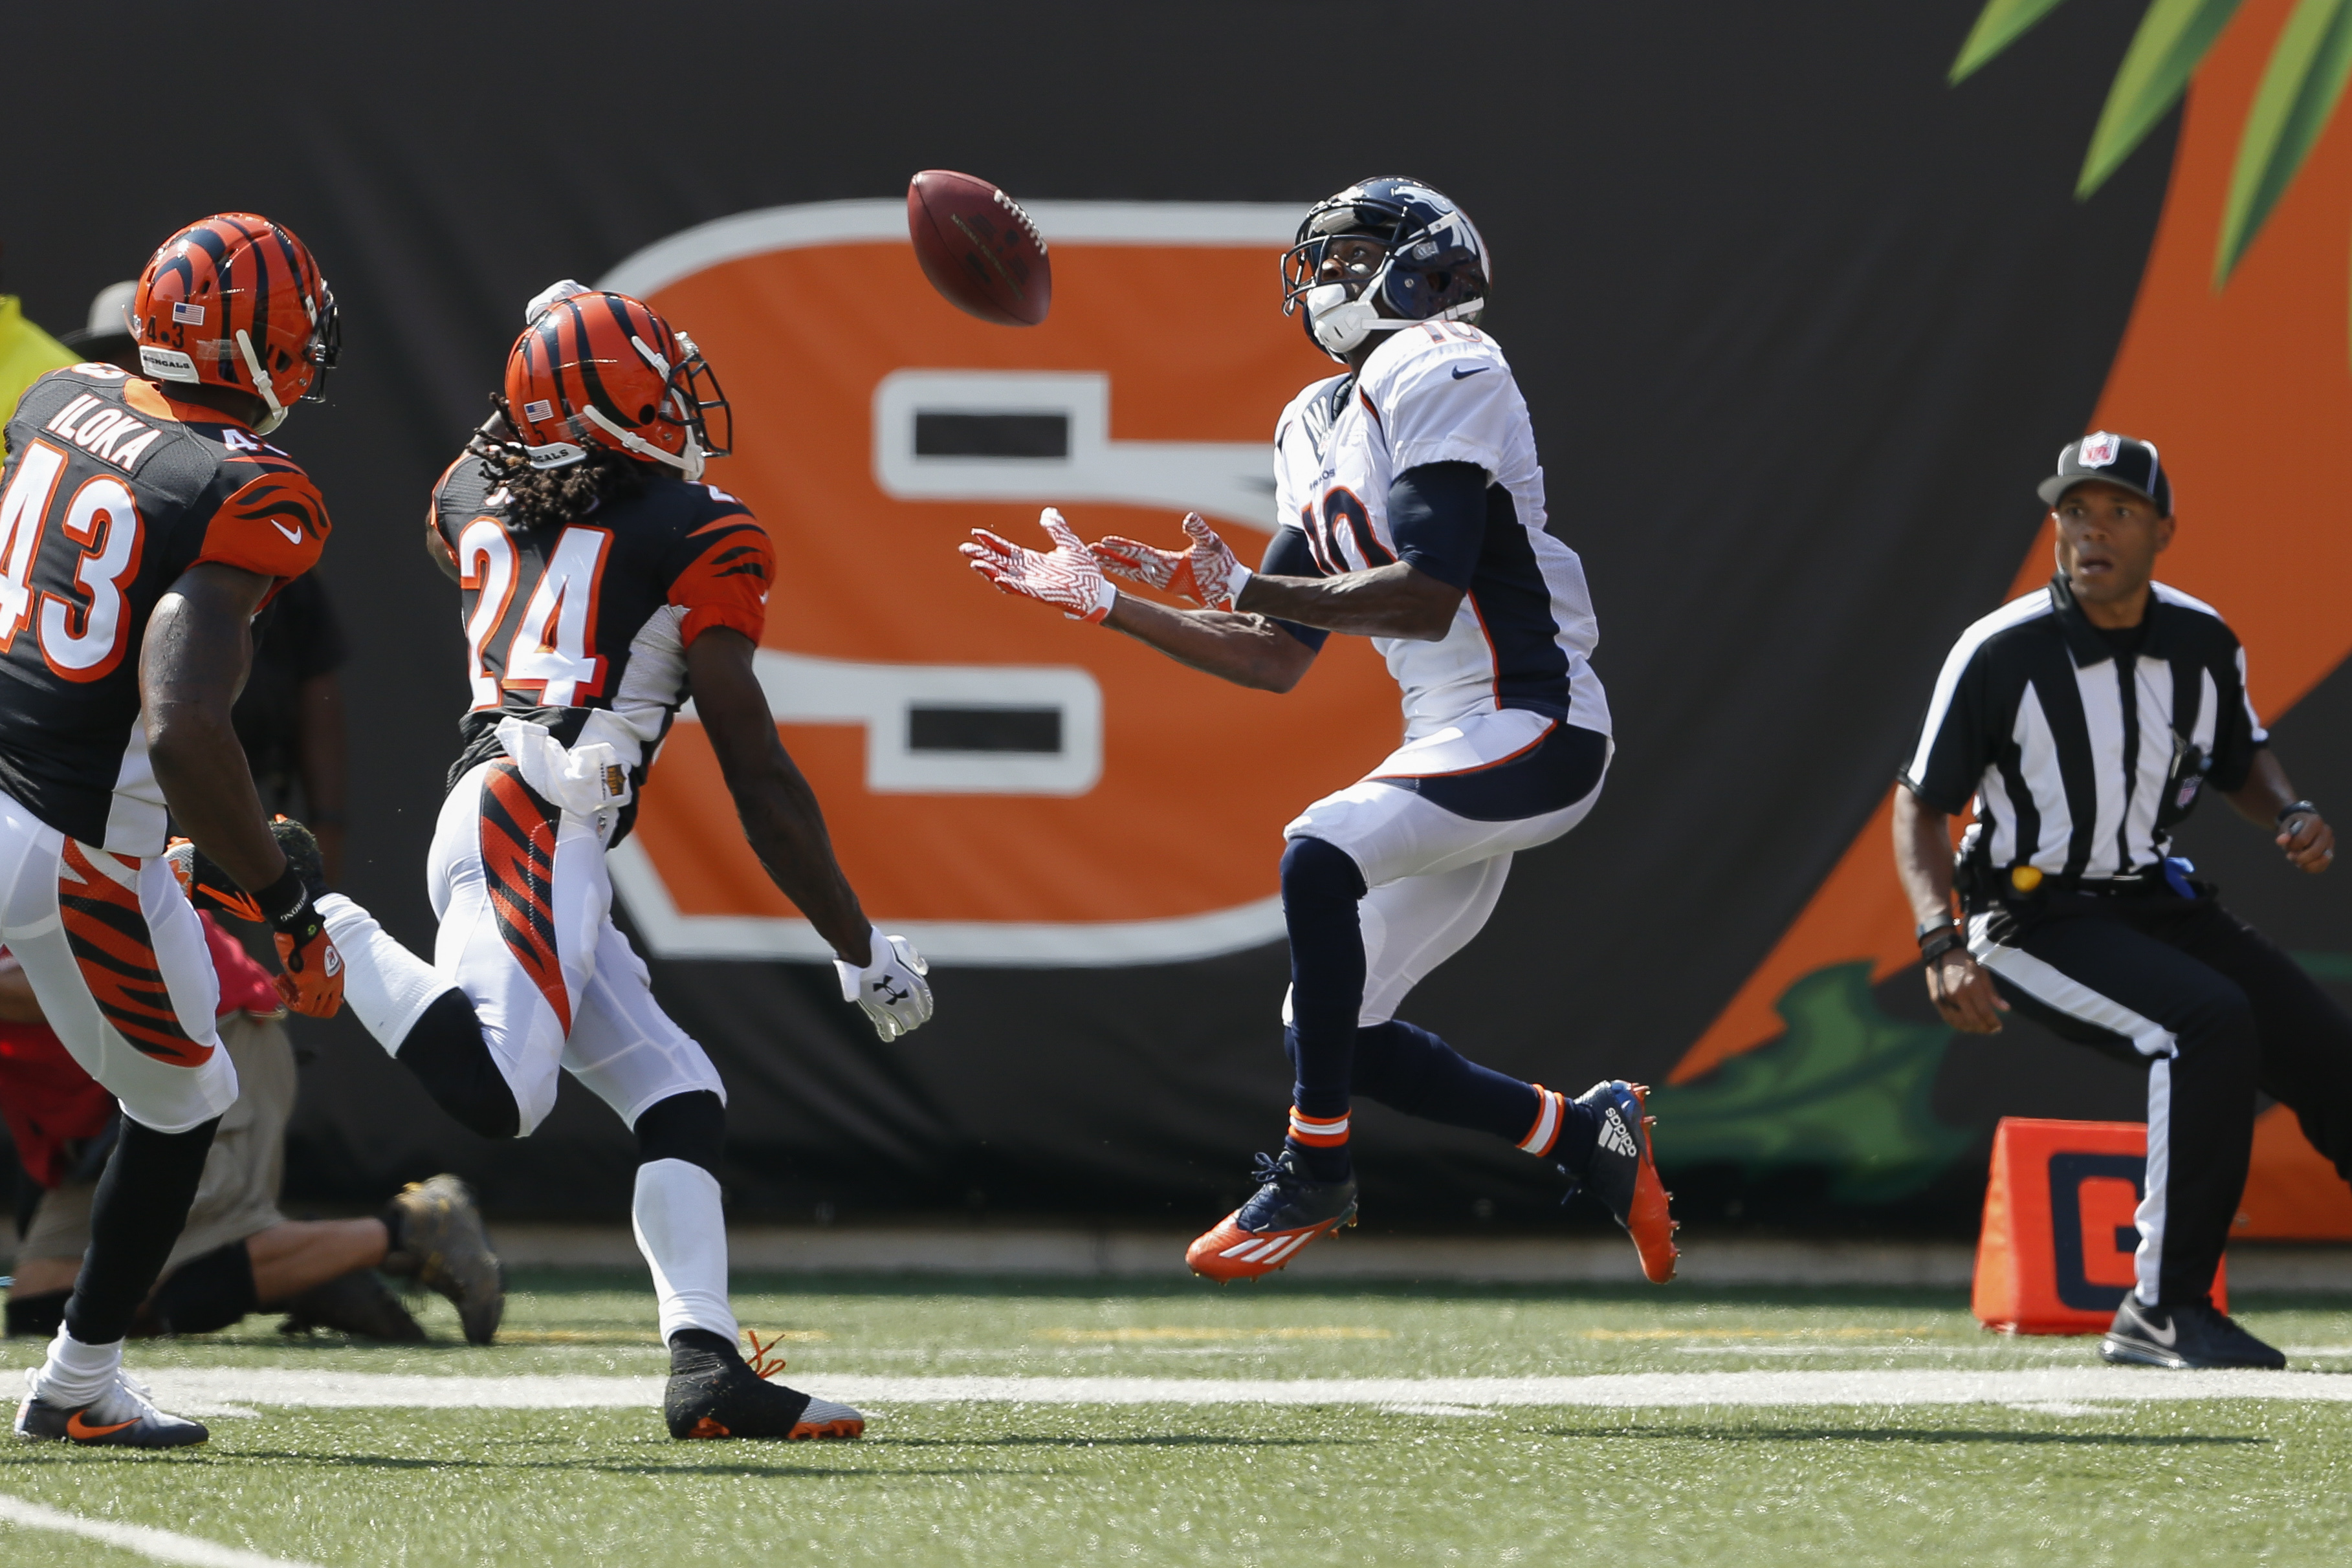 Denver Broncos wide receiver Emmanuel Sanders (10) catches a touchdown pass against Cincinnati Bengals cornerback Adam Jones (24) and free safety George Iloka (43) during the first half of an NFL football game, Sunday, Sept. 25, 2016, in Cincinnati. (AP P